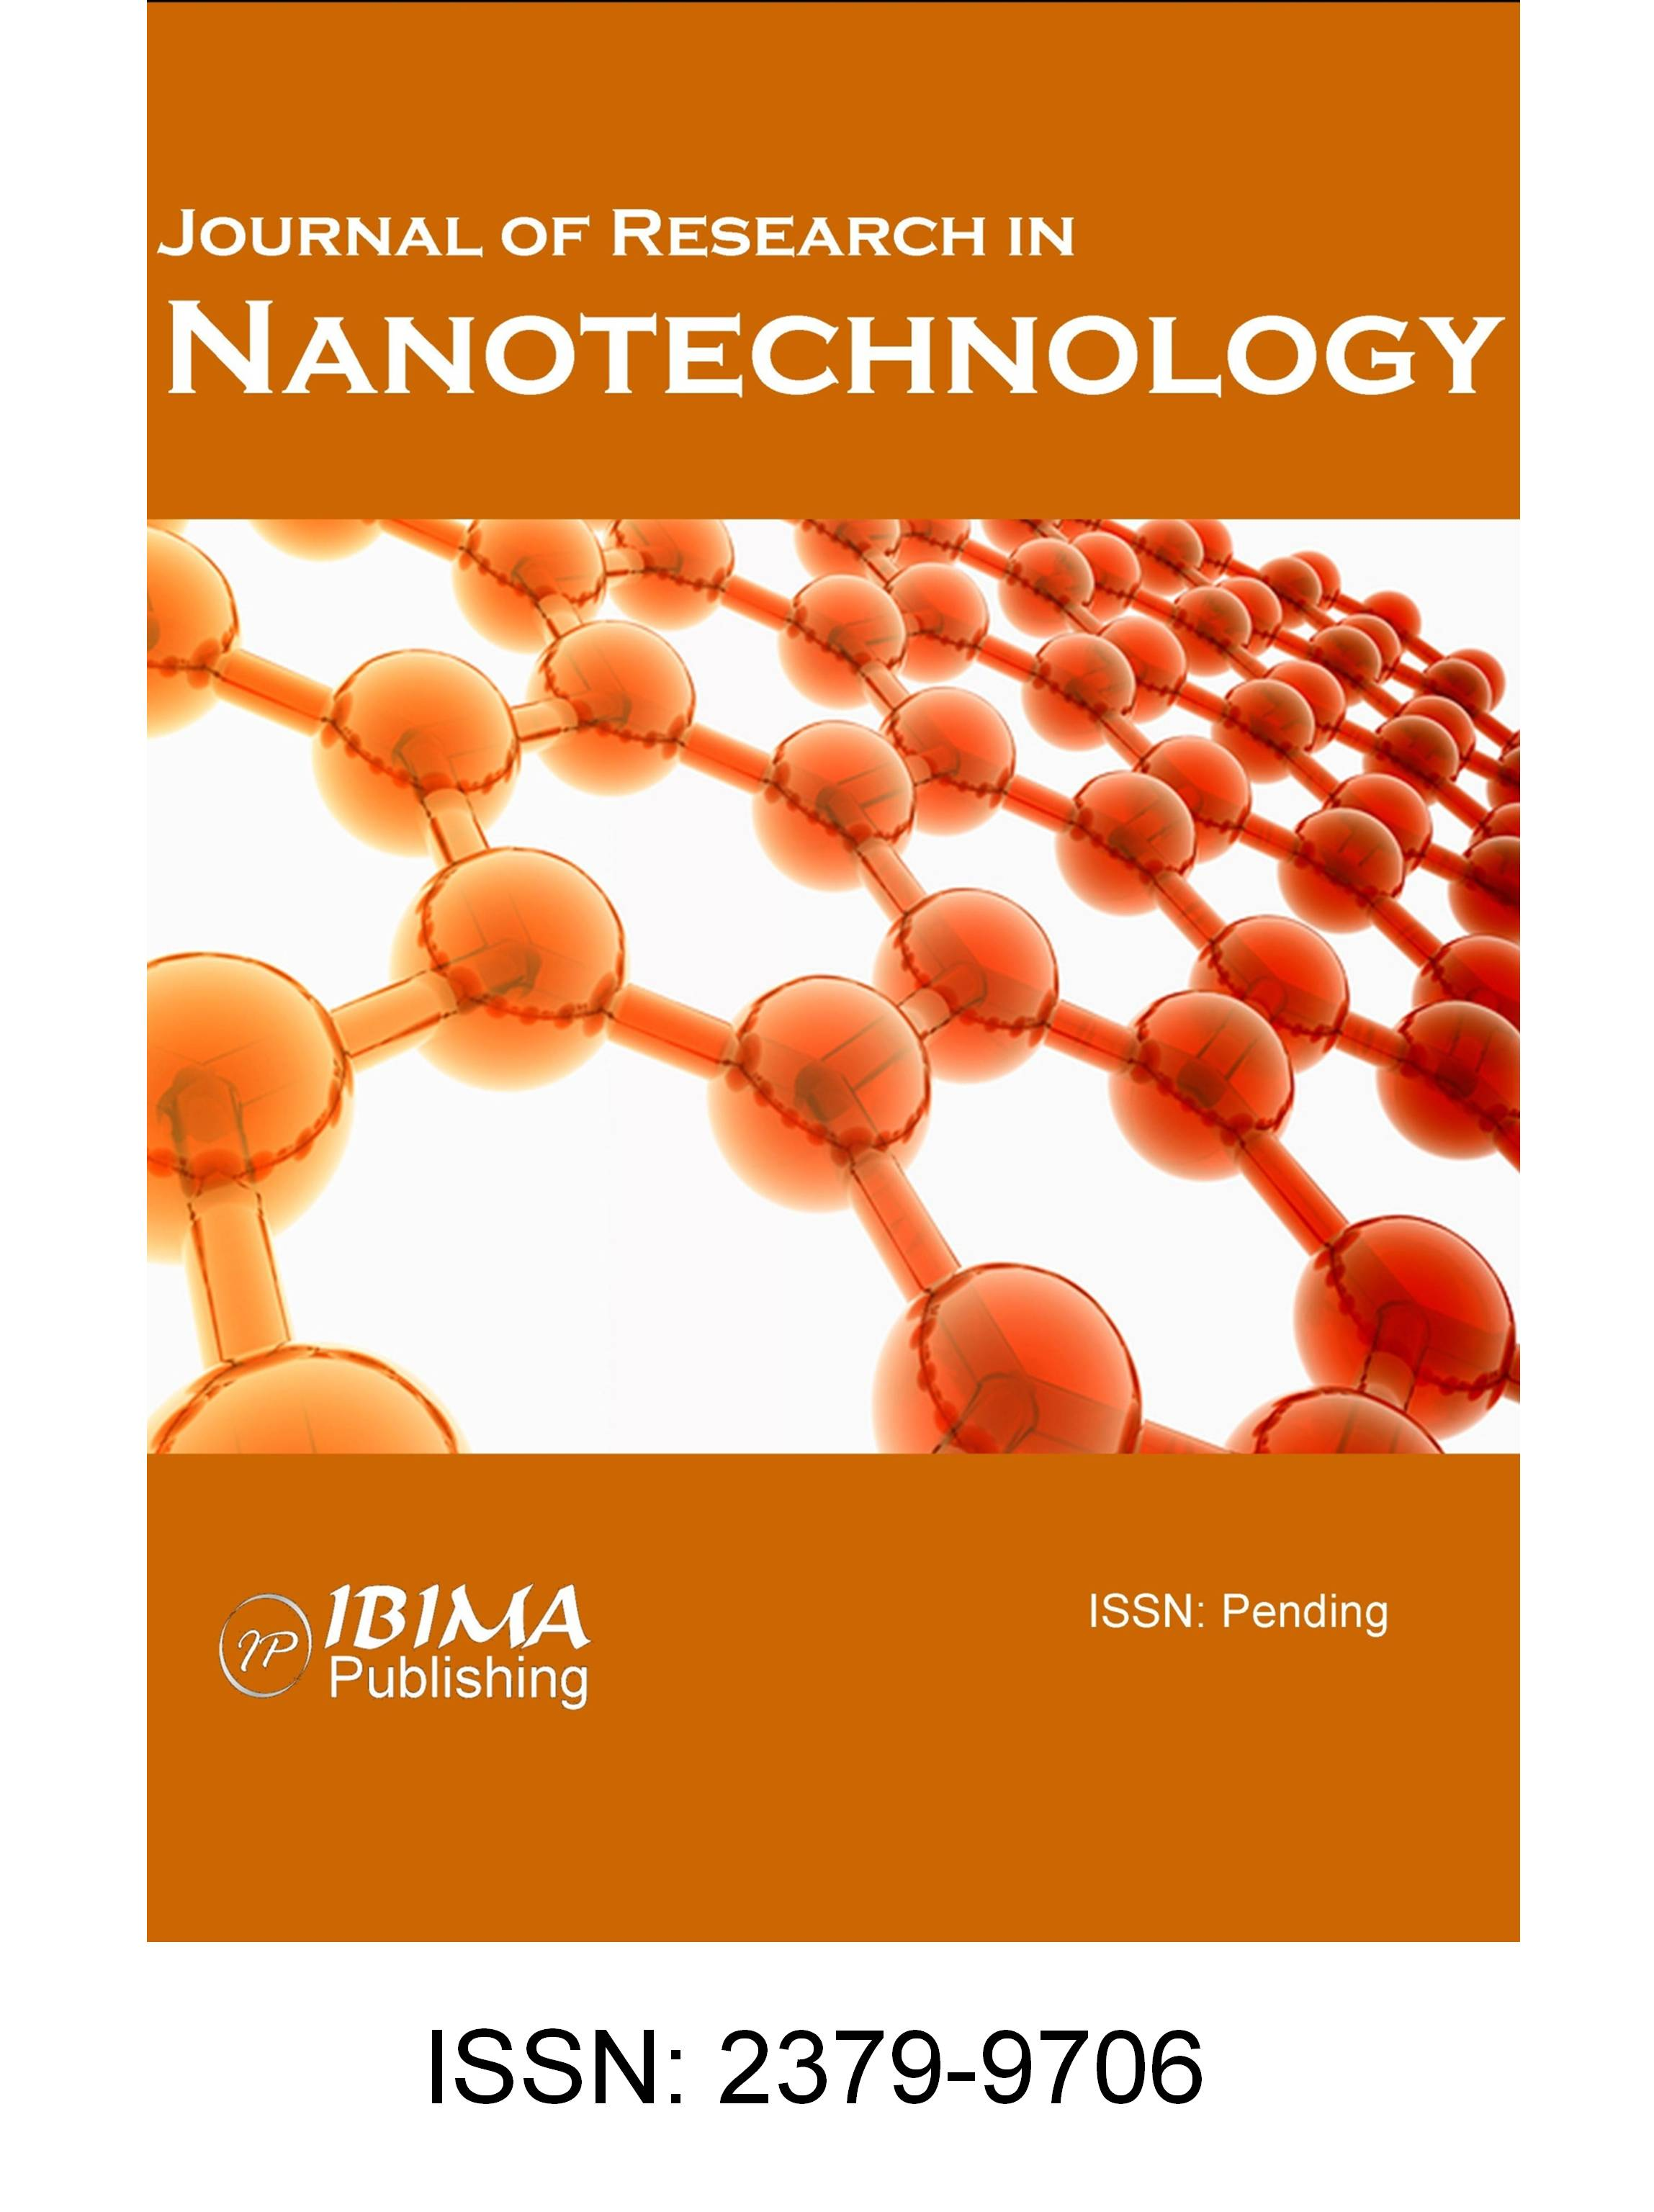 research papers nanotechnology By focusing on the different research societies, joarnsnt mainly targets researchers, scientists and engineers relevant to nanoscience and nanotechnology by communicating relevant and updated research papers that will assist them not only to learn from industrial but also help them to use various techniques to make.